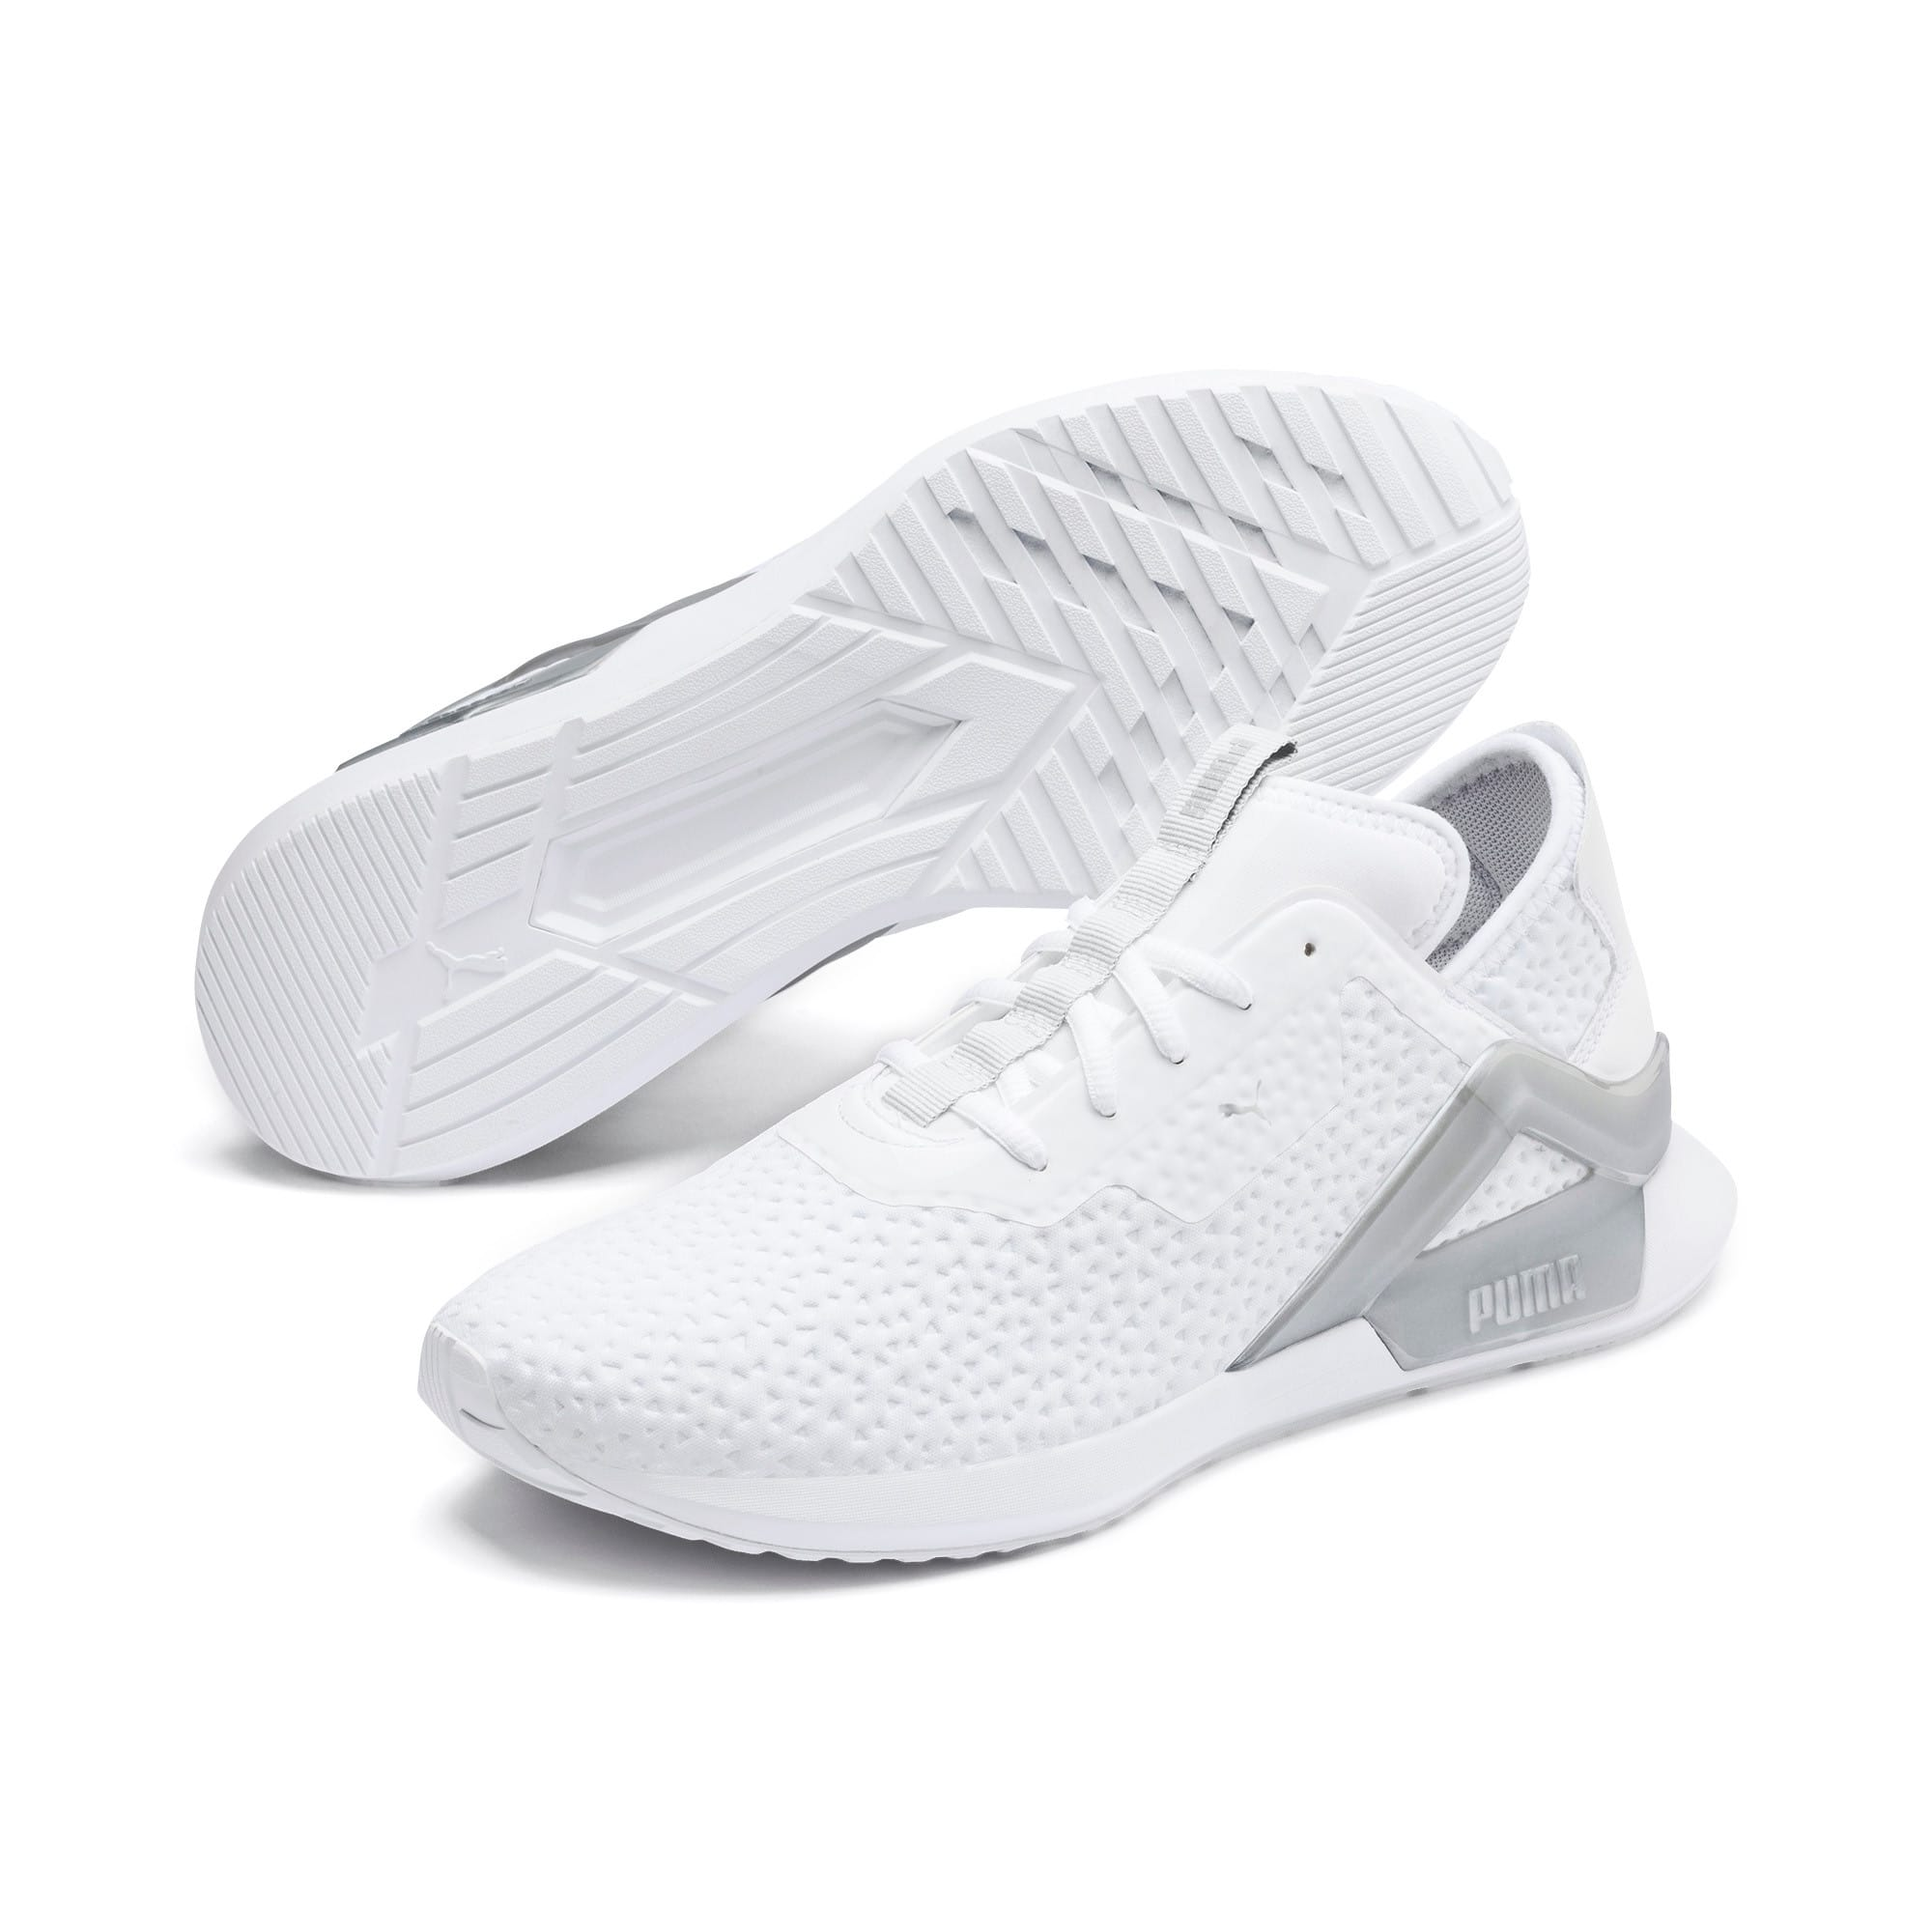 Thumbnail 3 of Rogue X Metallic Herren Sneaker, Puma White-Puma Silver, medium